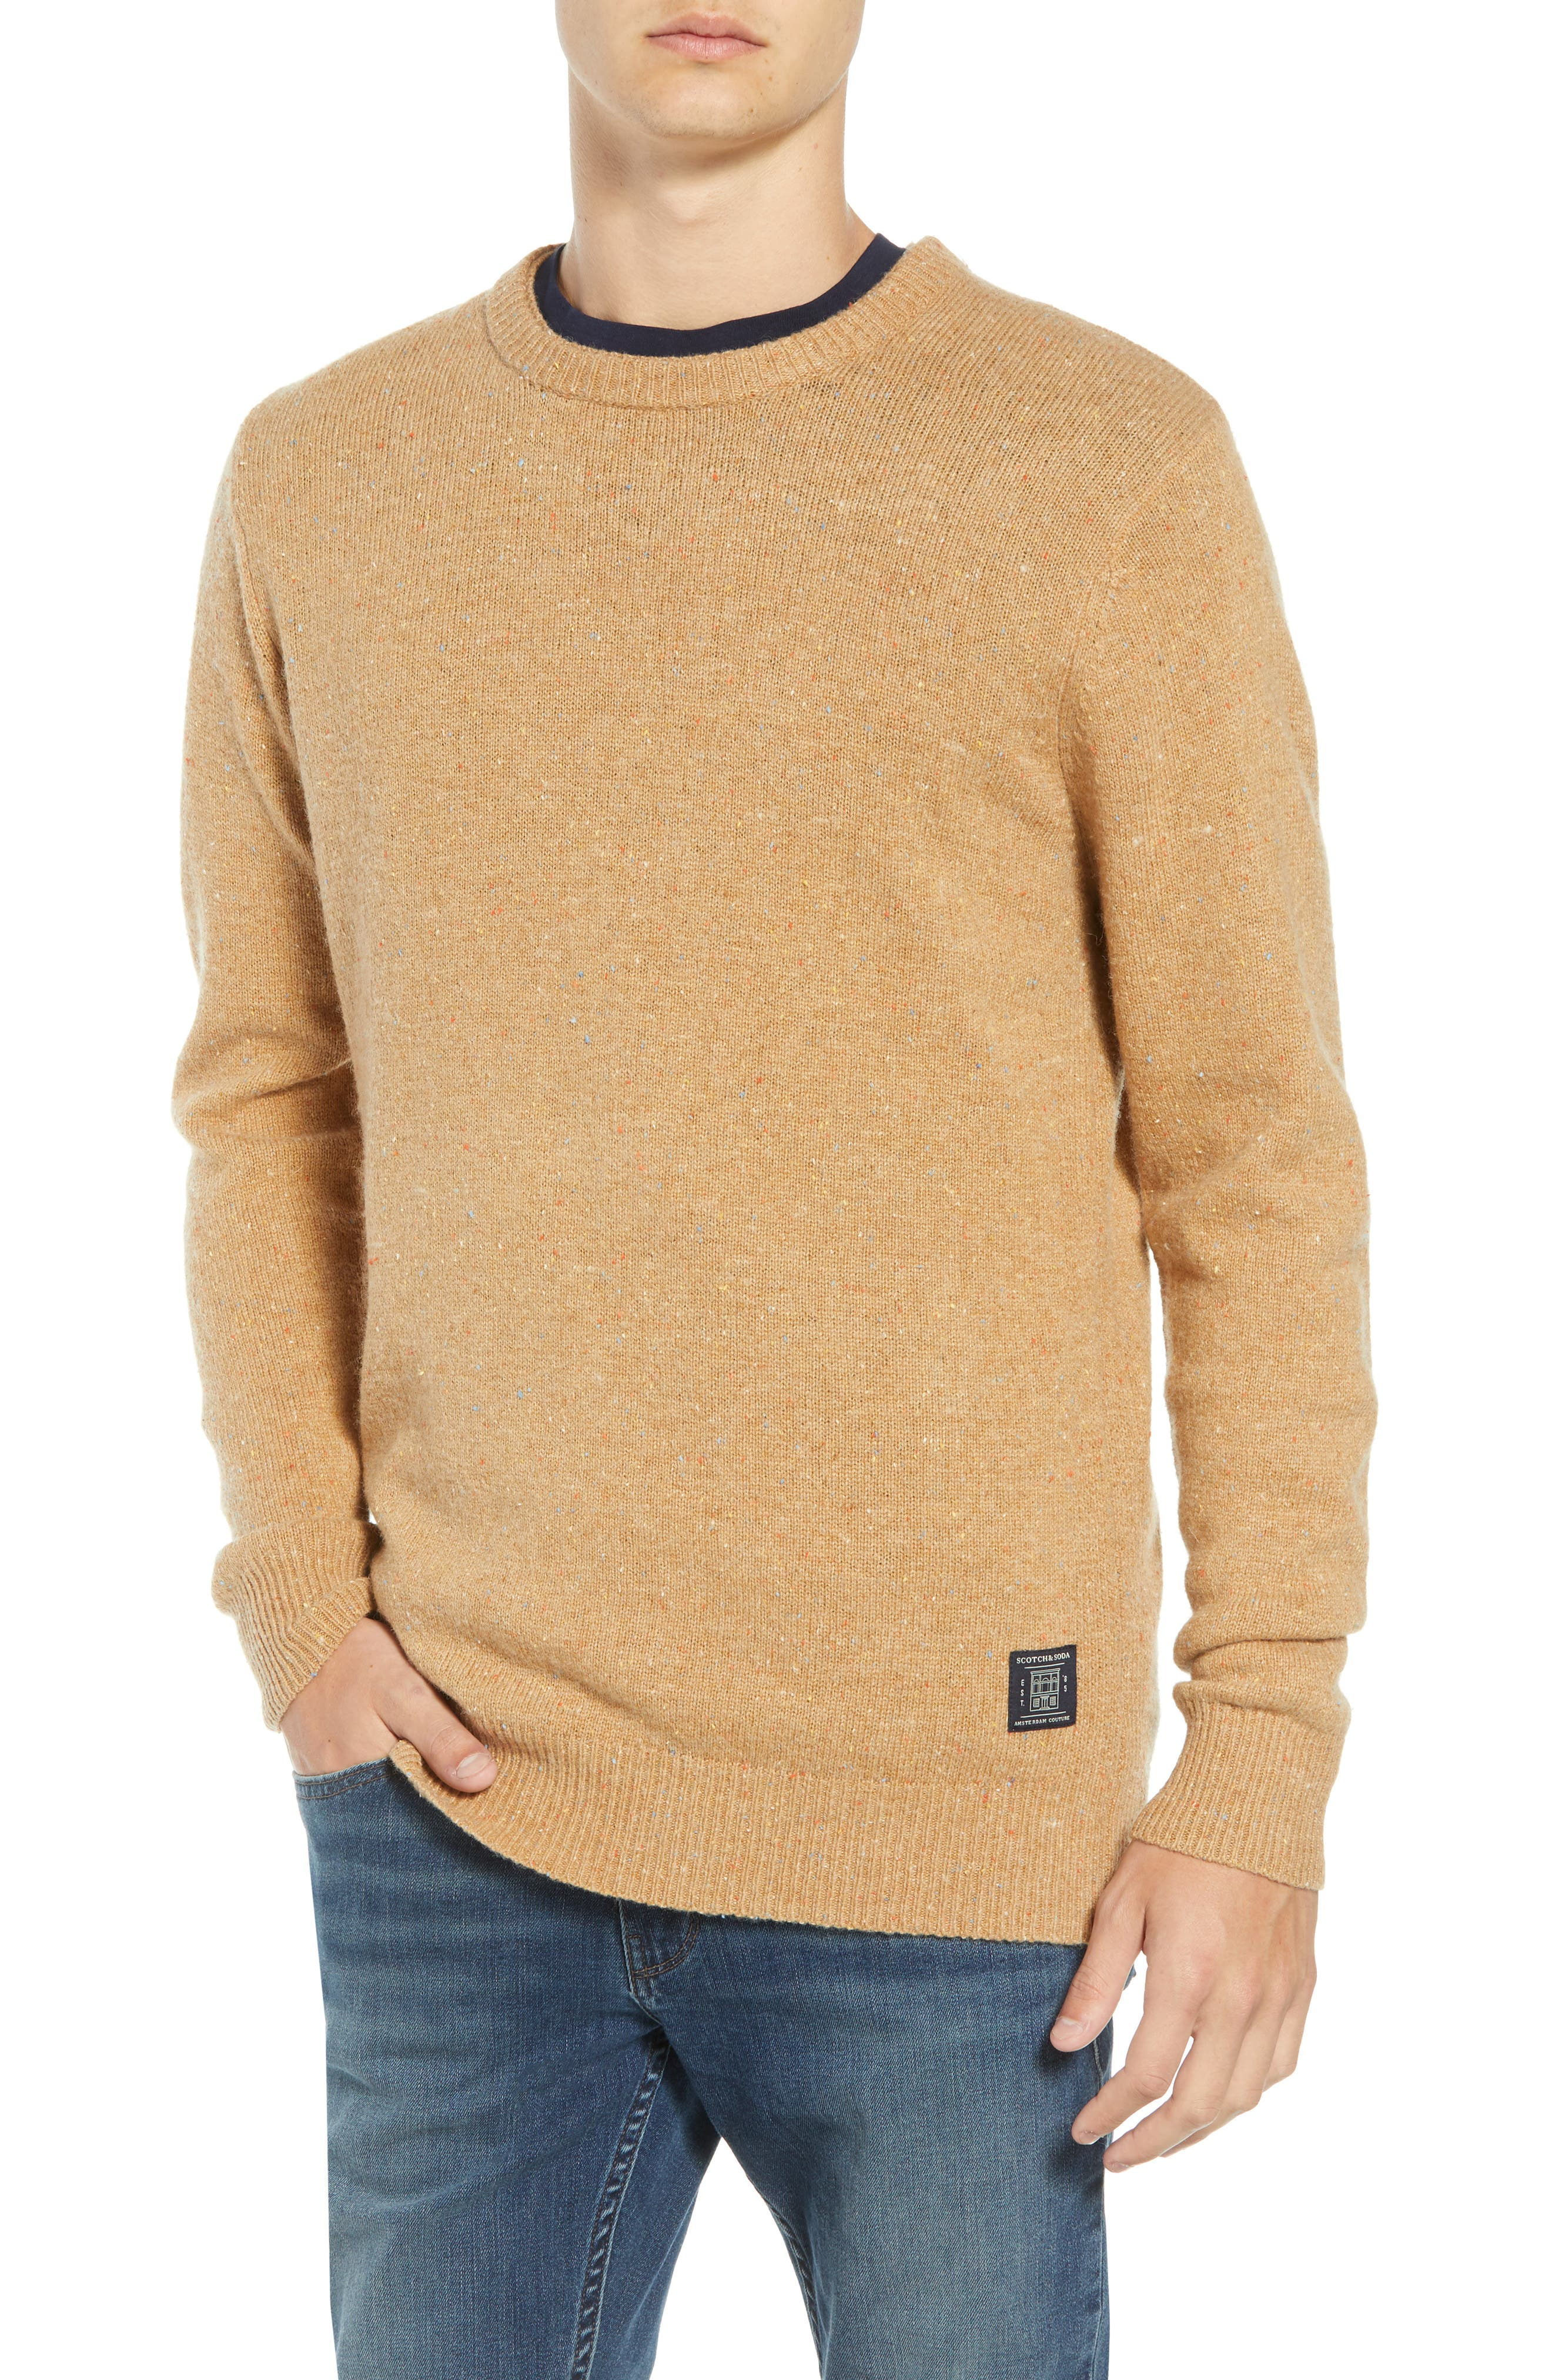 SCOTCH & SODA Nepped Wool Blend Sweater, Main, color, COMBO E